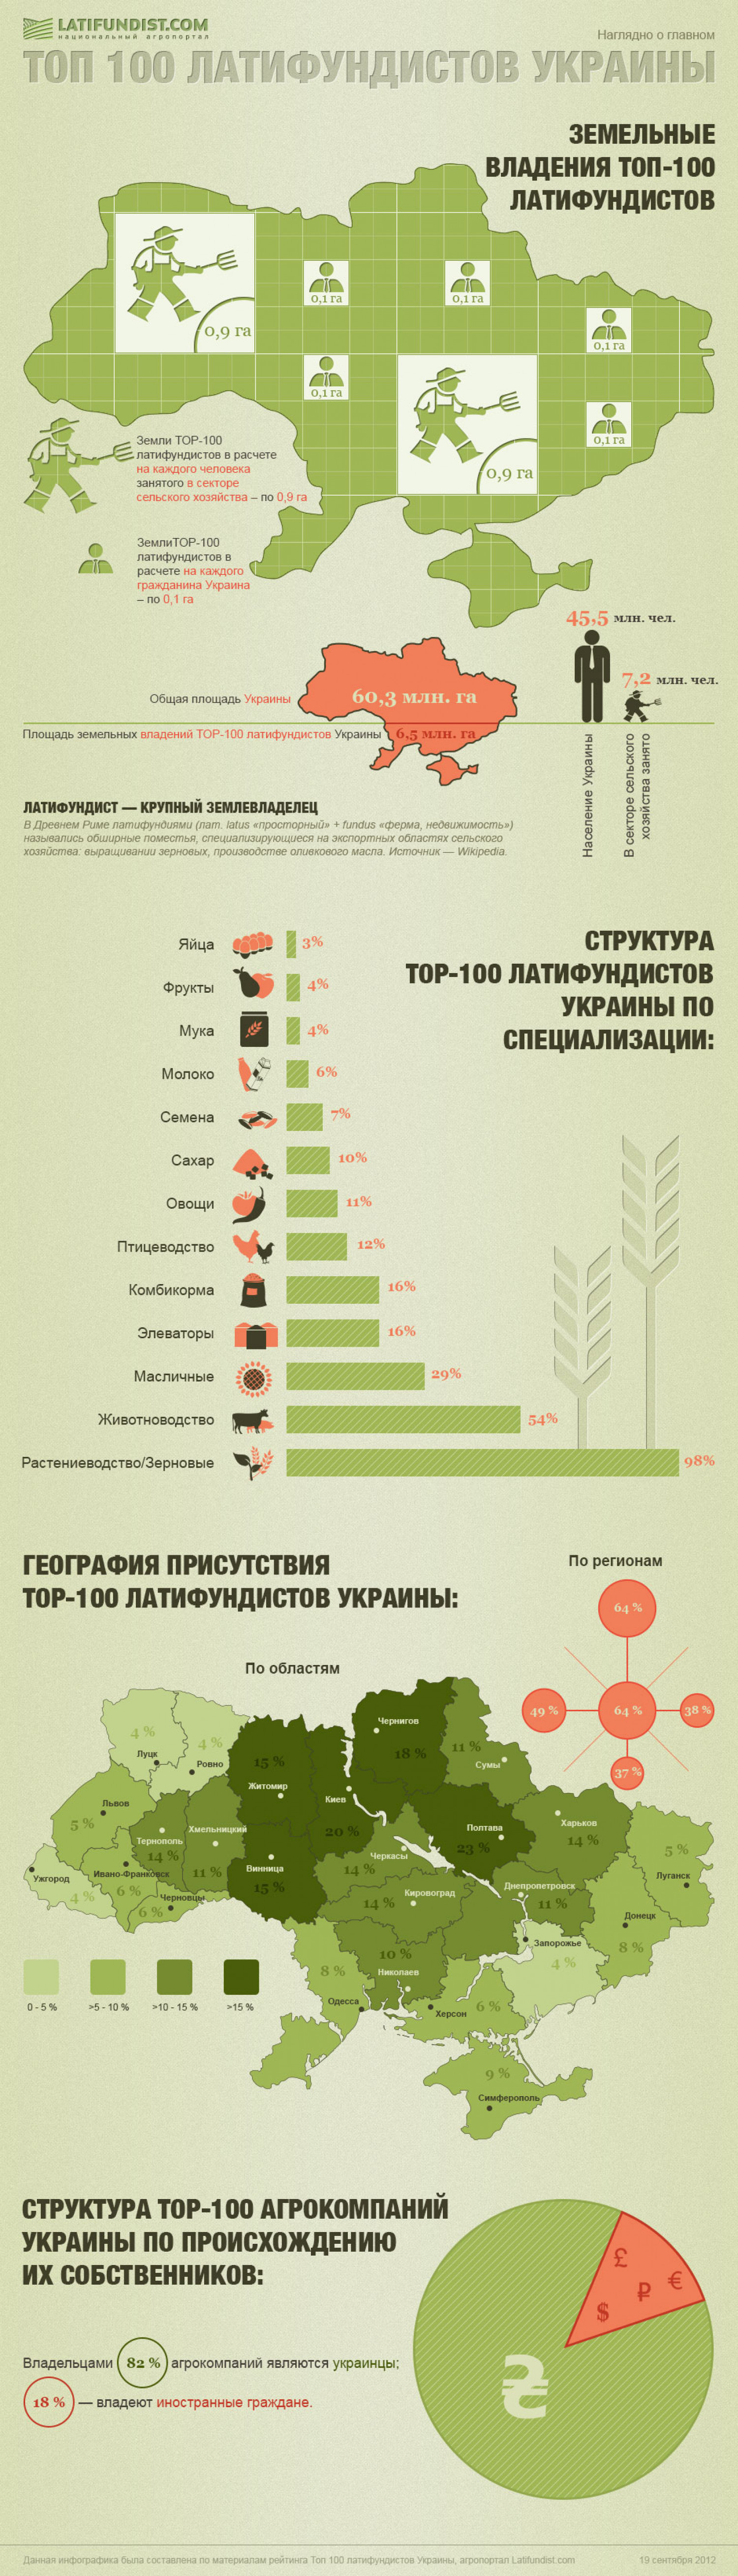 Top 100 of Ukrainian's Agrarians Infographic